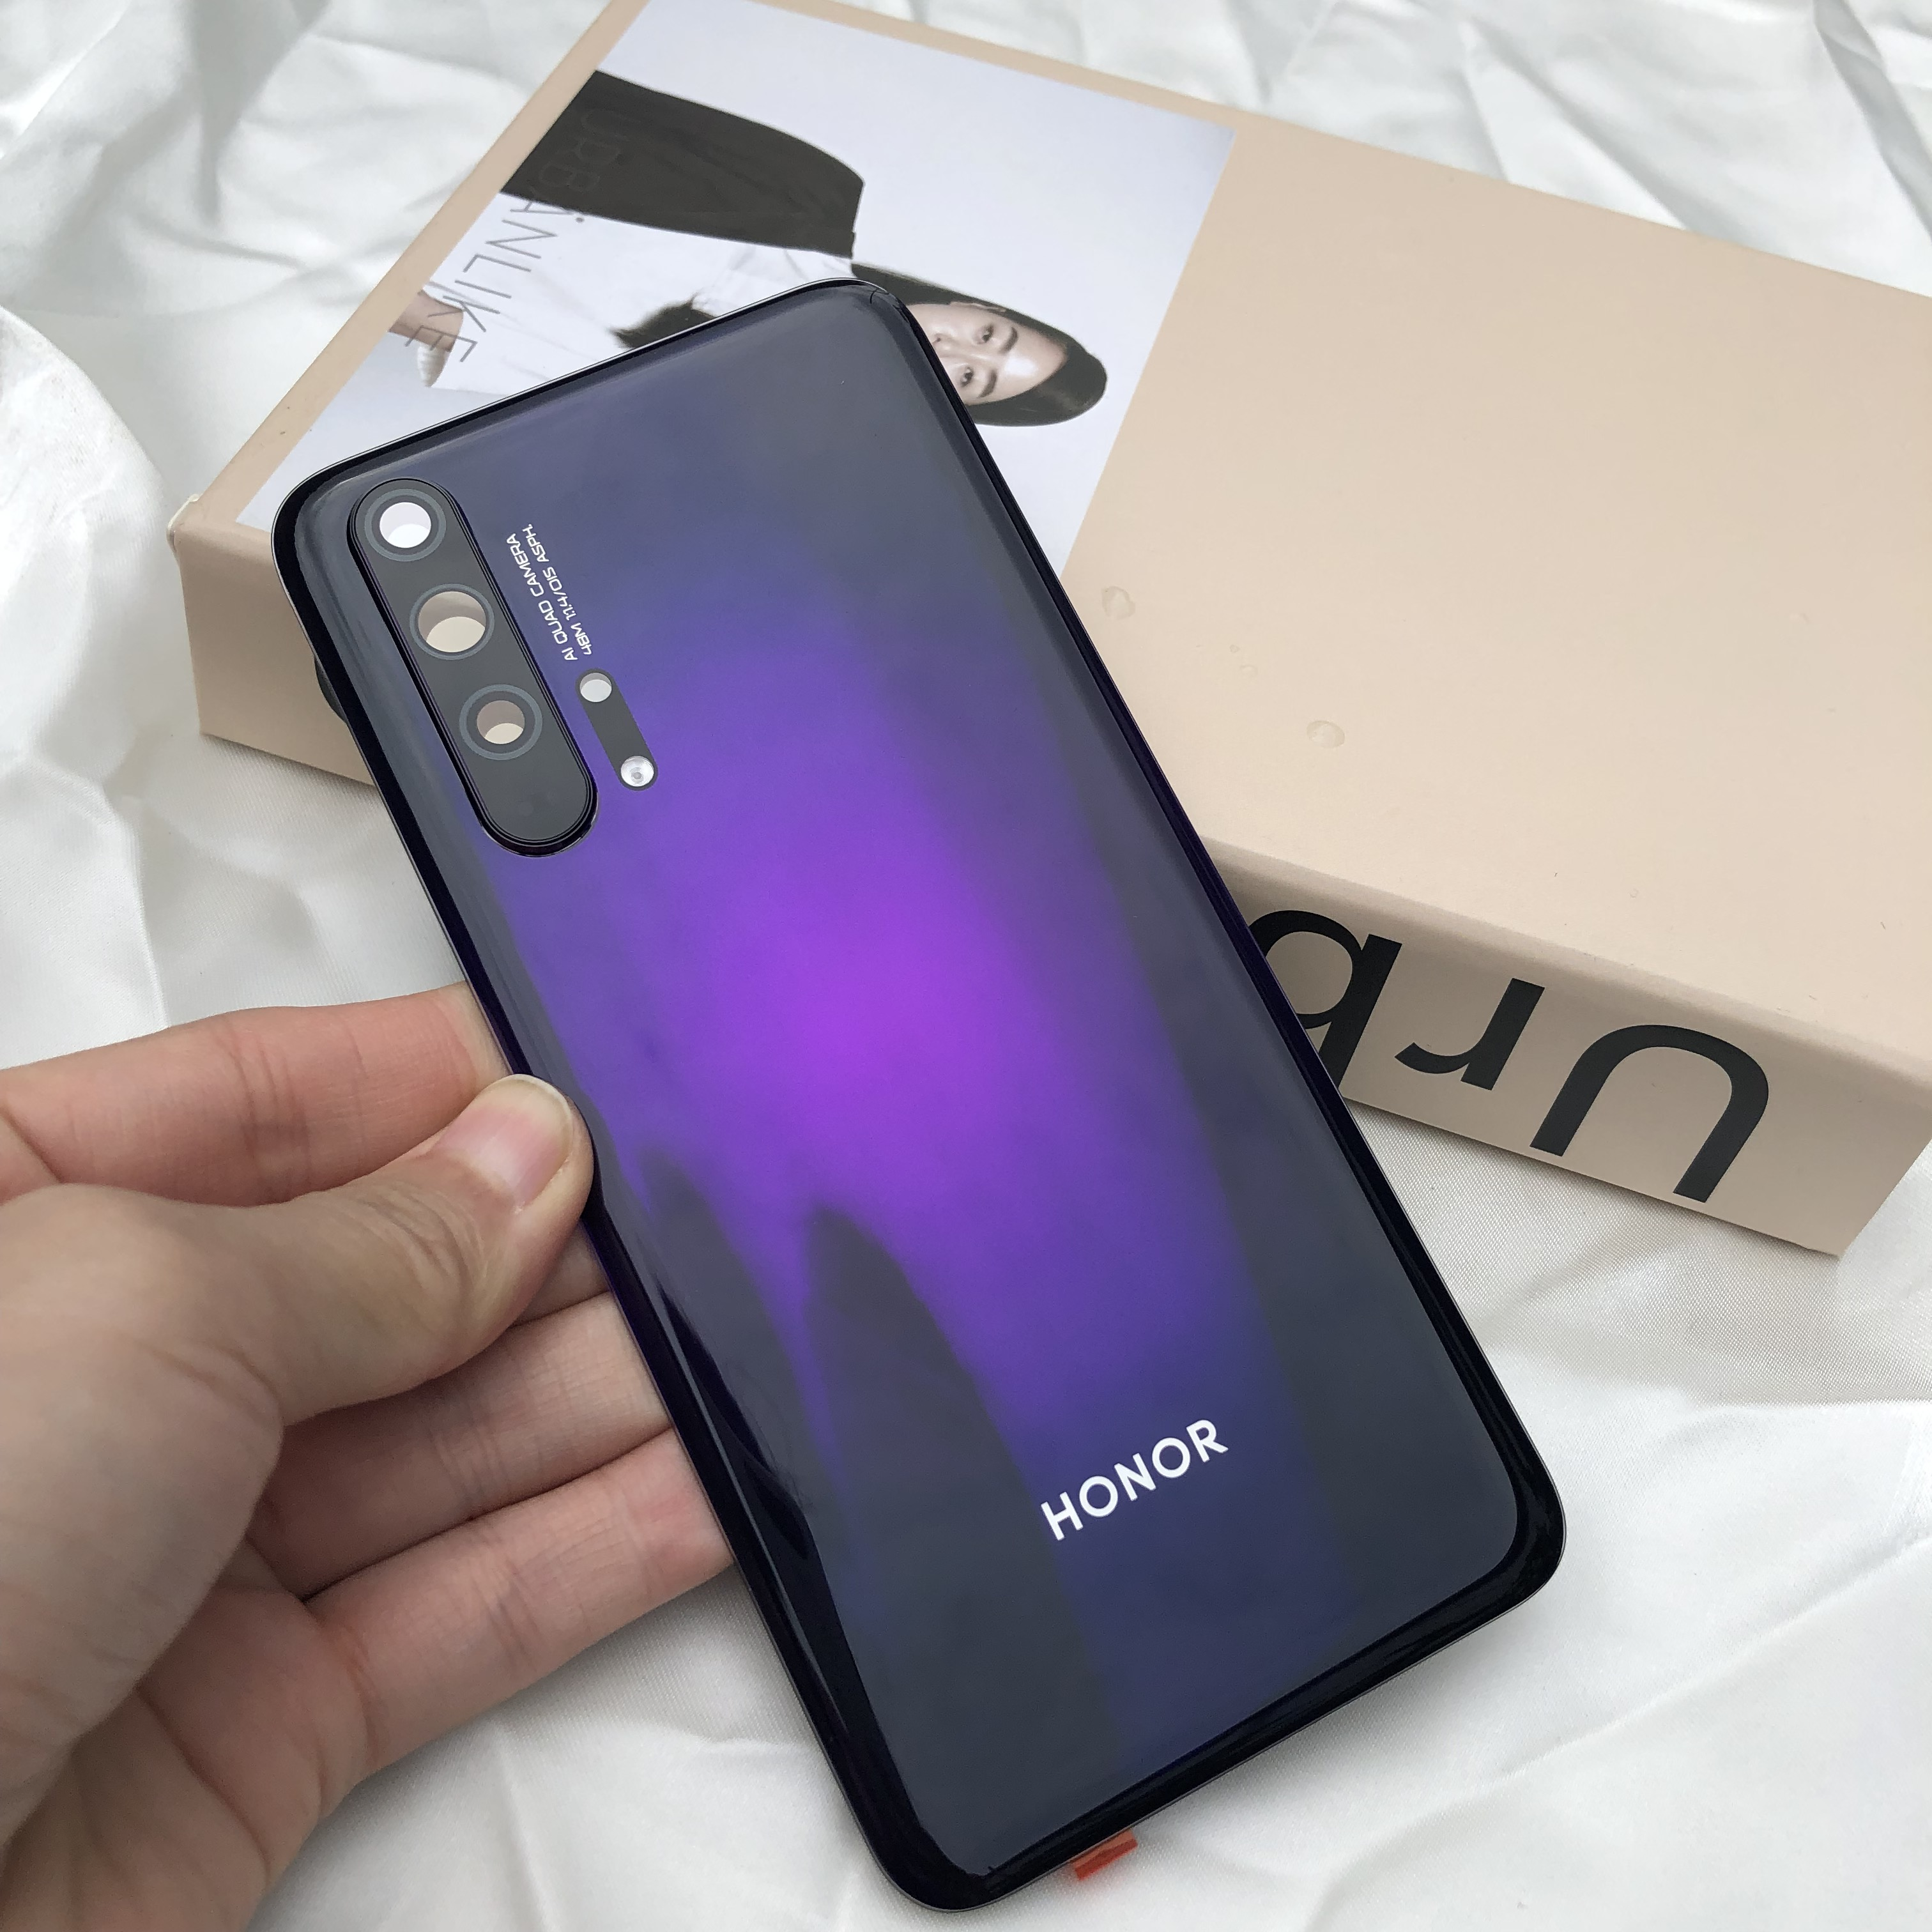 Image 5 - Original Tempered Glass Back Battery Cover Door Housing   Flash  cover   camera lens For Huawei Honor 20 Pro Service Spare PartsMobile  Phone Housings